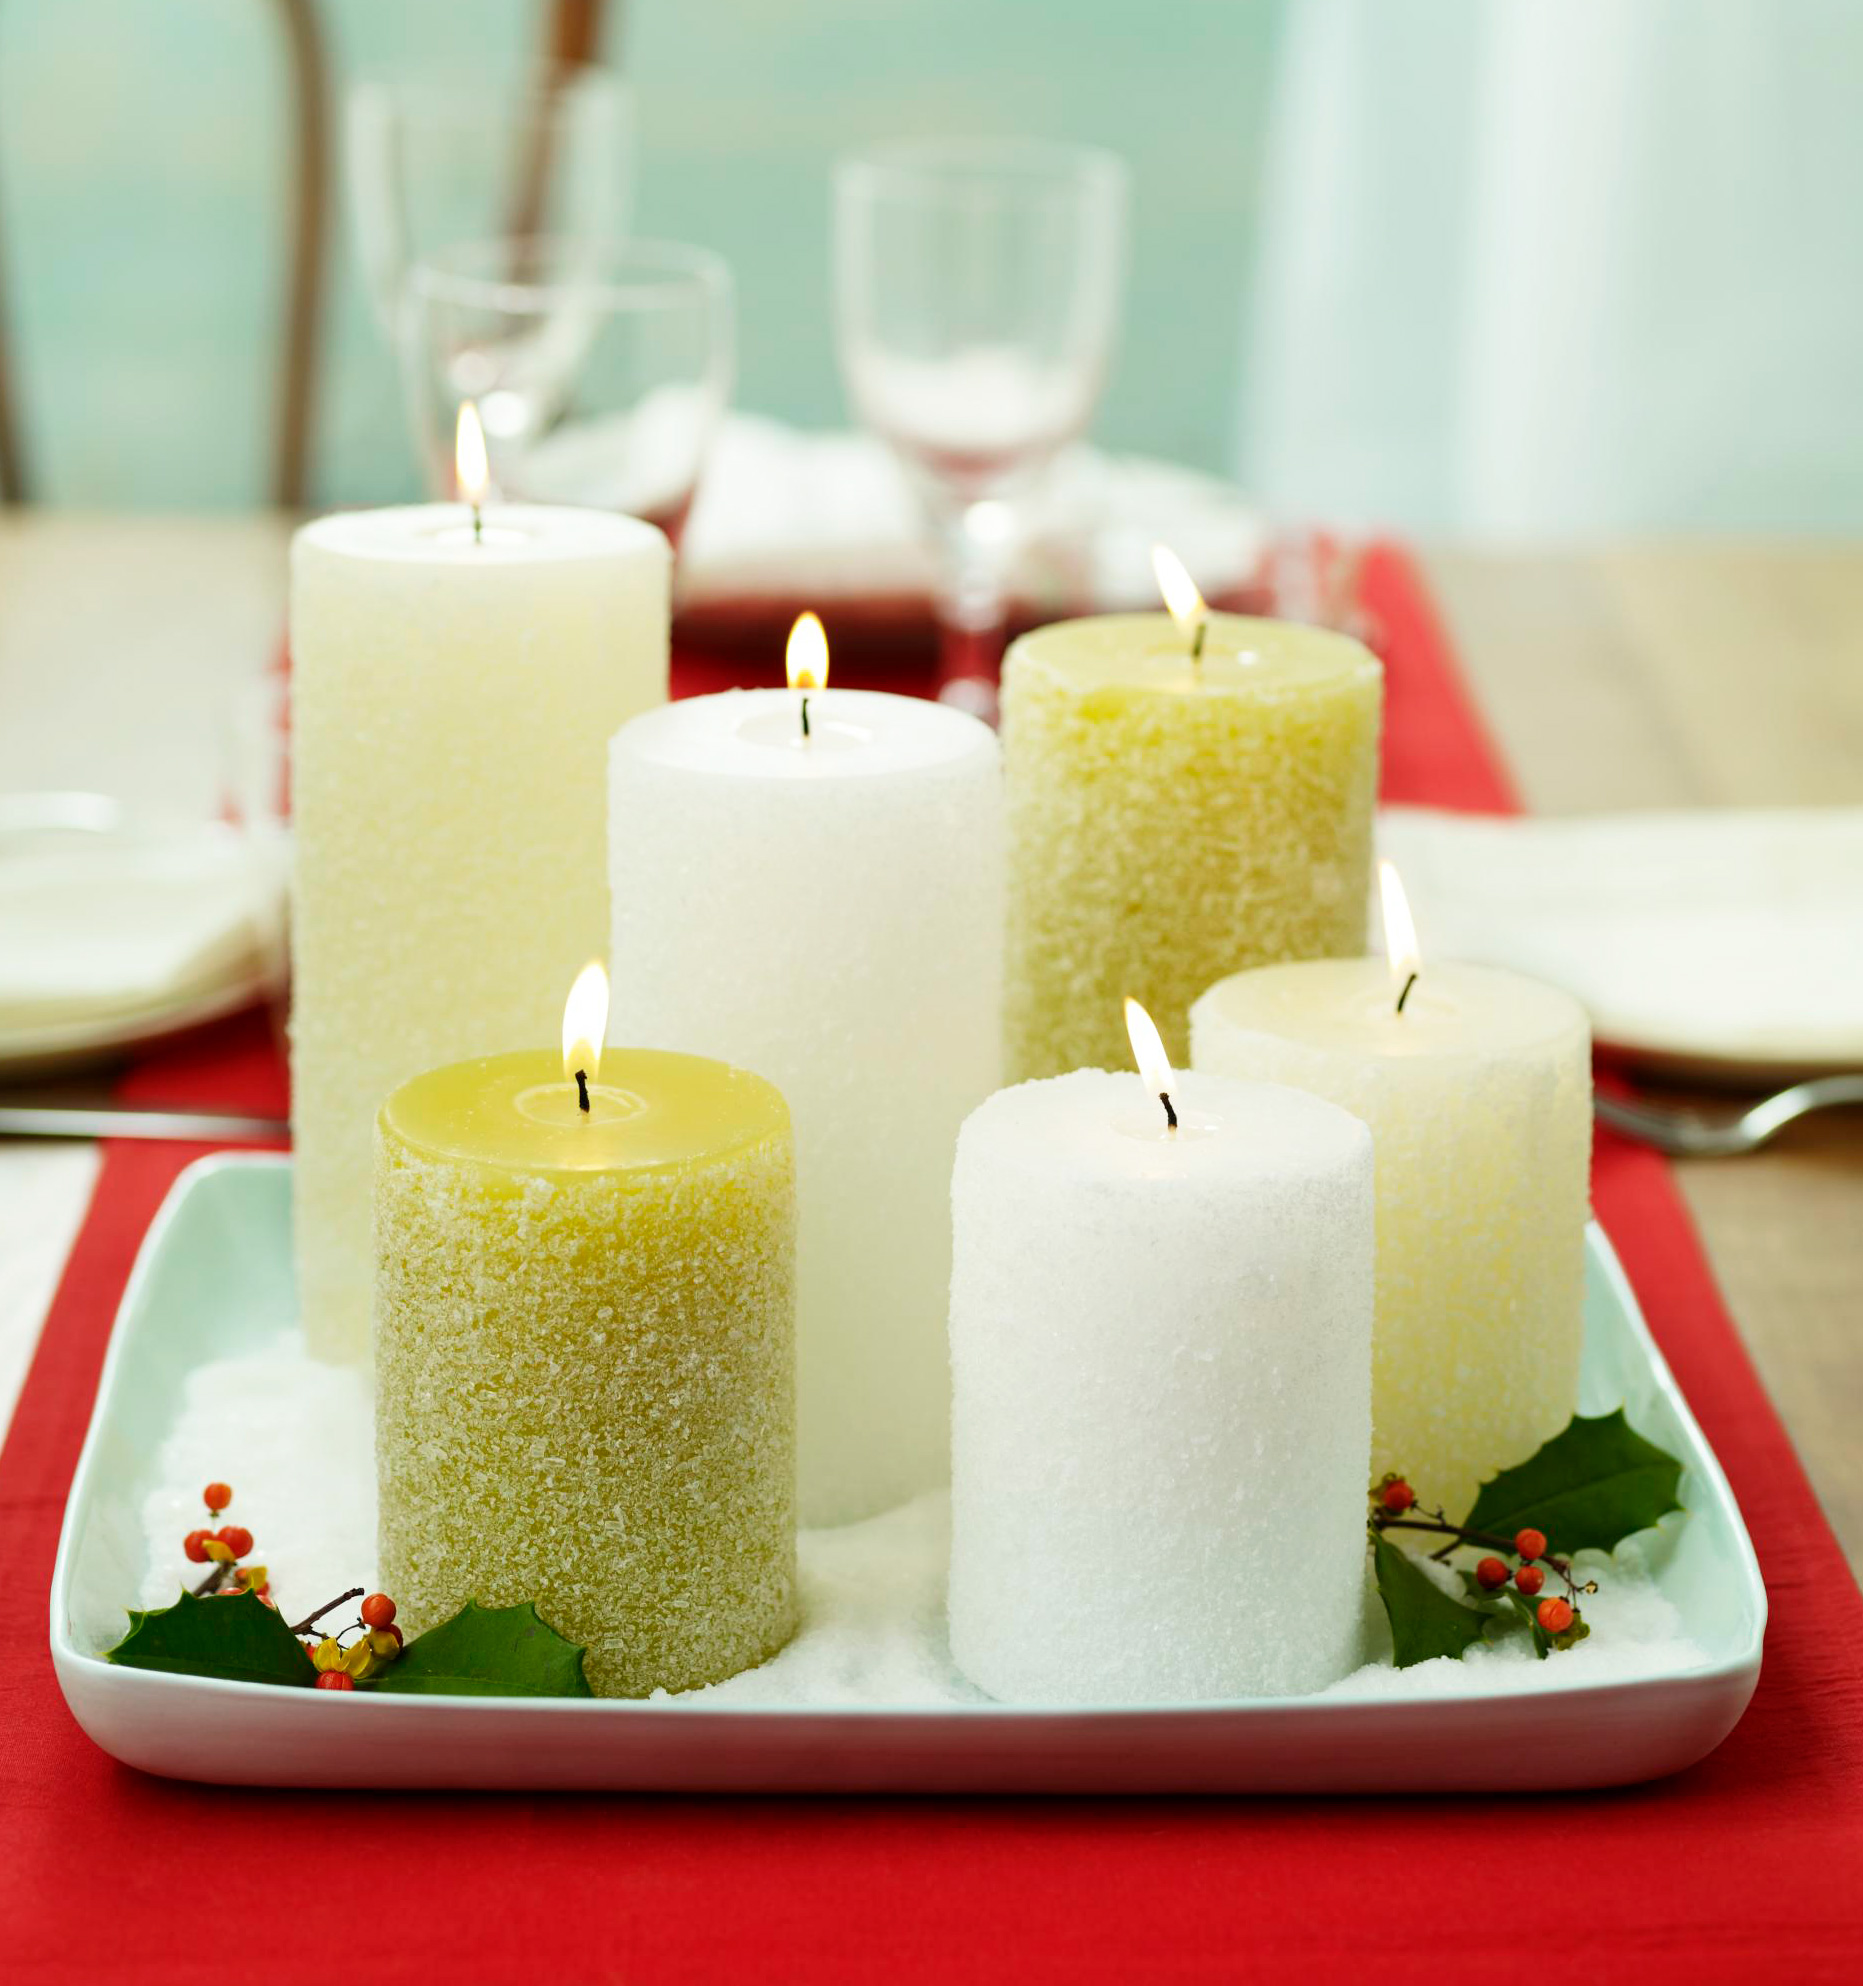 Christmas centerpiece ideas: sparkle candles